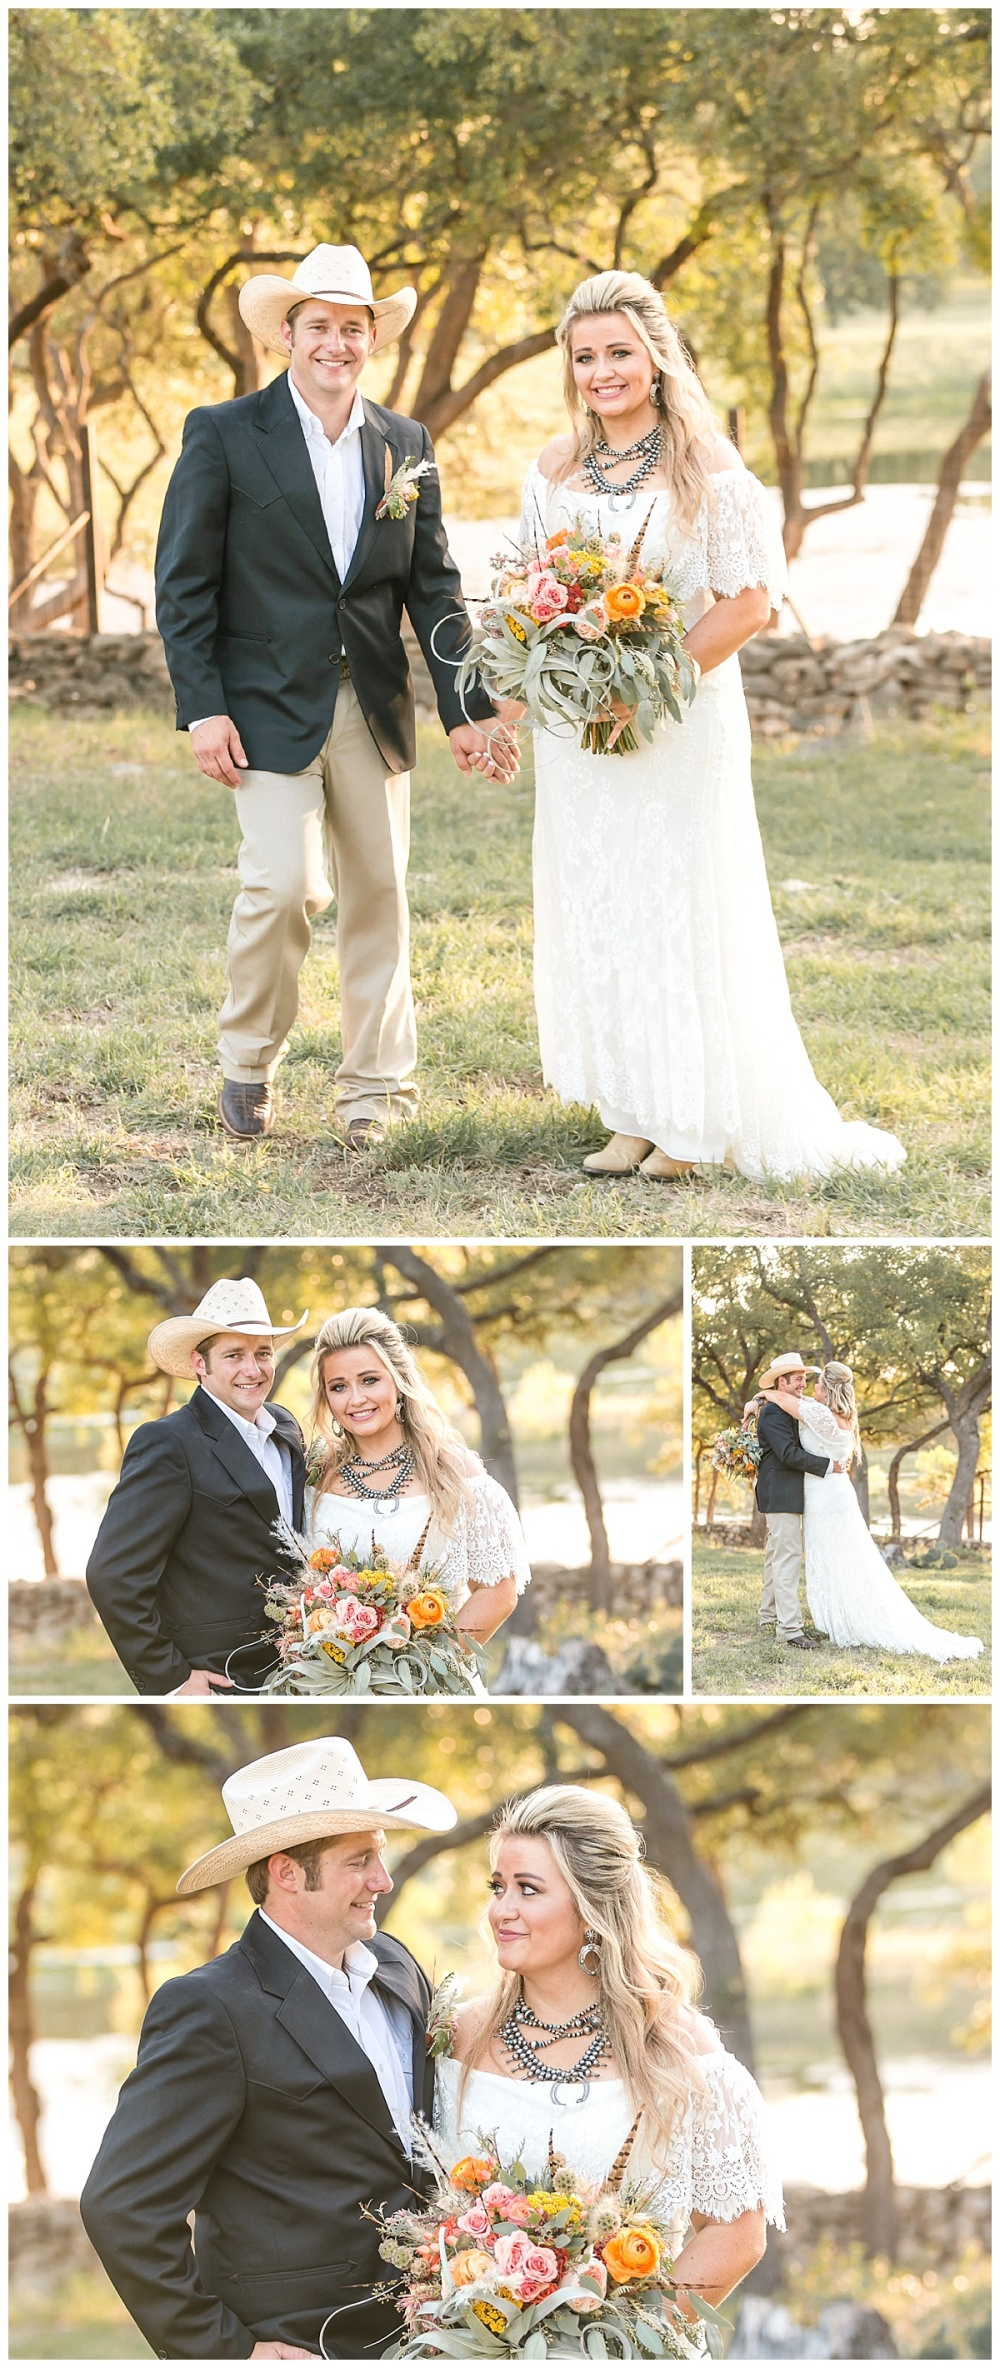 Texas-Wedding-Photographer-Braded-T-Ranch-Kendalia-Bride-Groom-Southwestern-Style-Carly-Barton-Photography-Vogt_0051.jpg